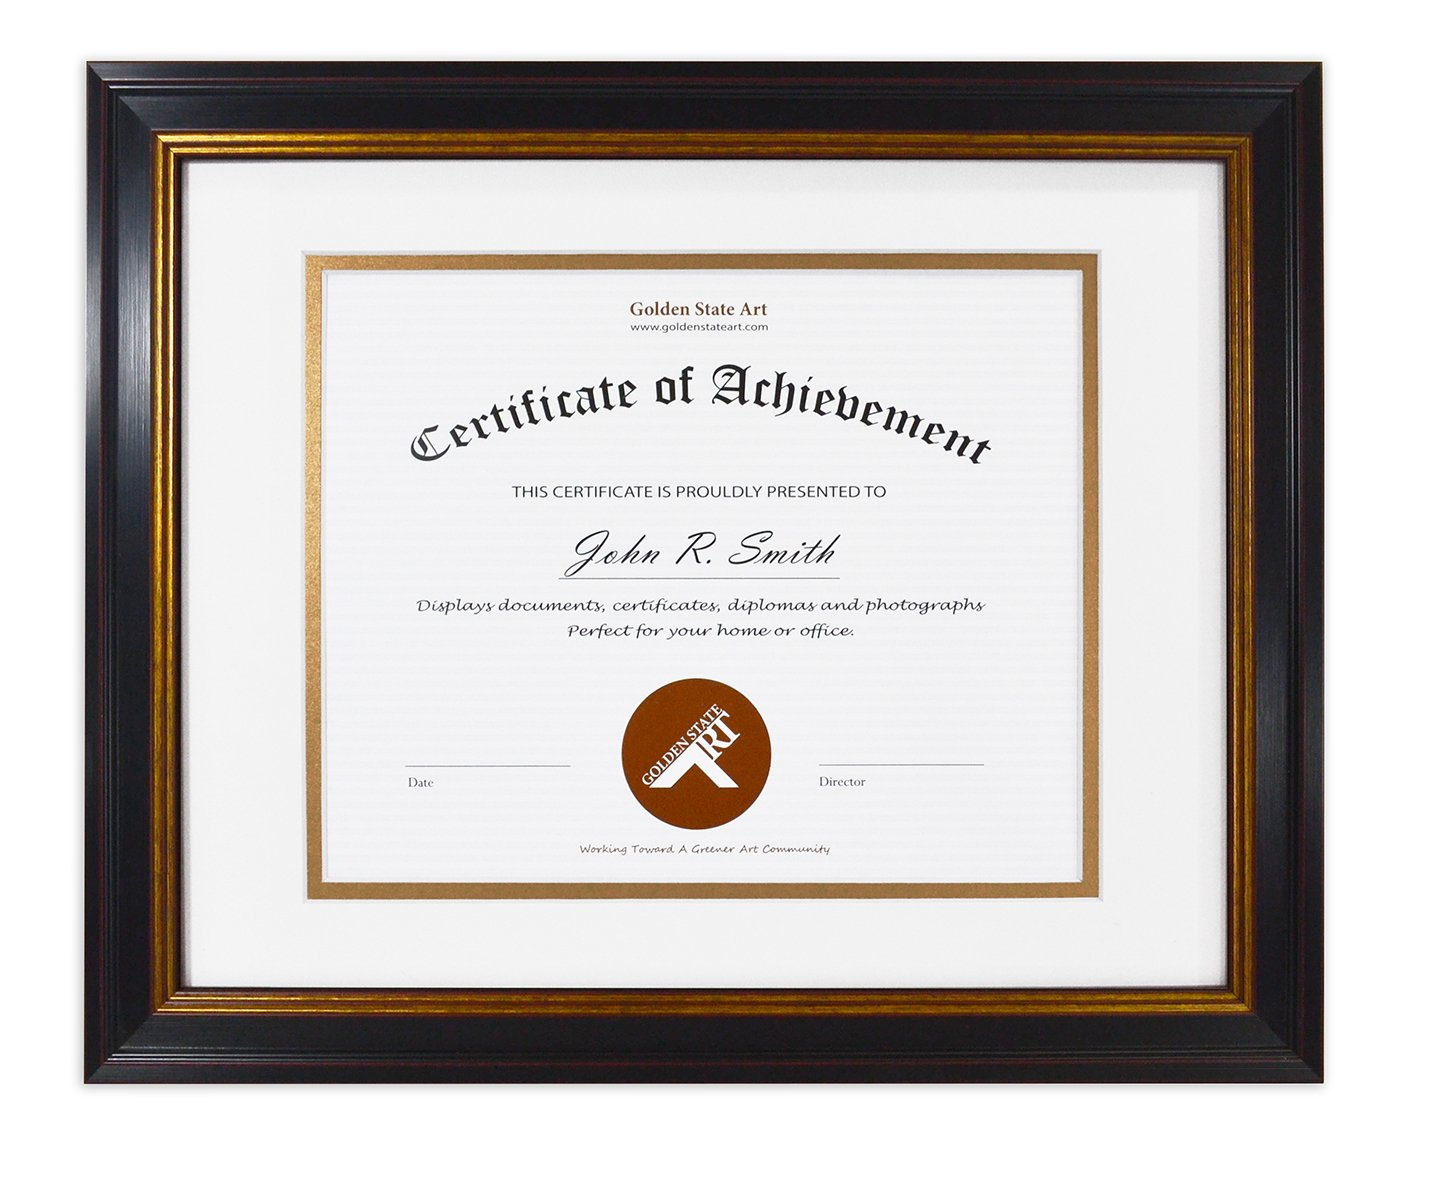 Golden State Art 11x14 Frame for 8x10 Diploma/Certificate, Black Gold & Burgundy color. Includes White Over Gold Double Mat and Real Glass